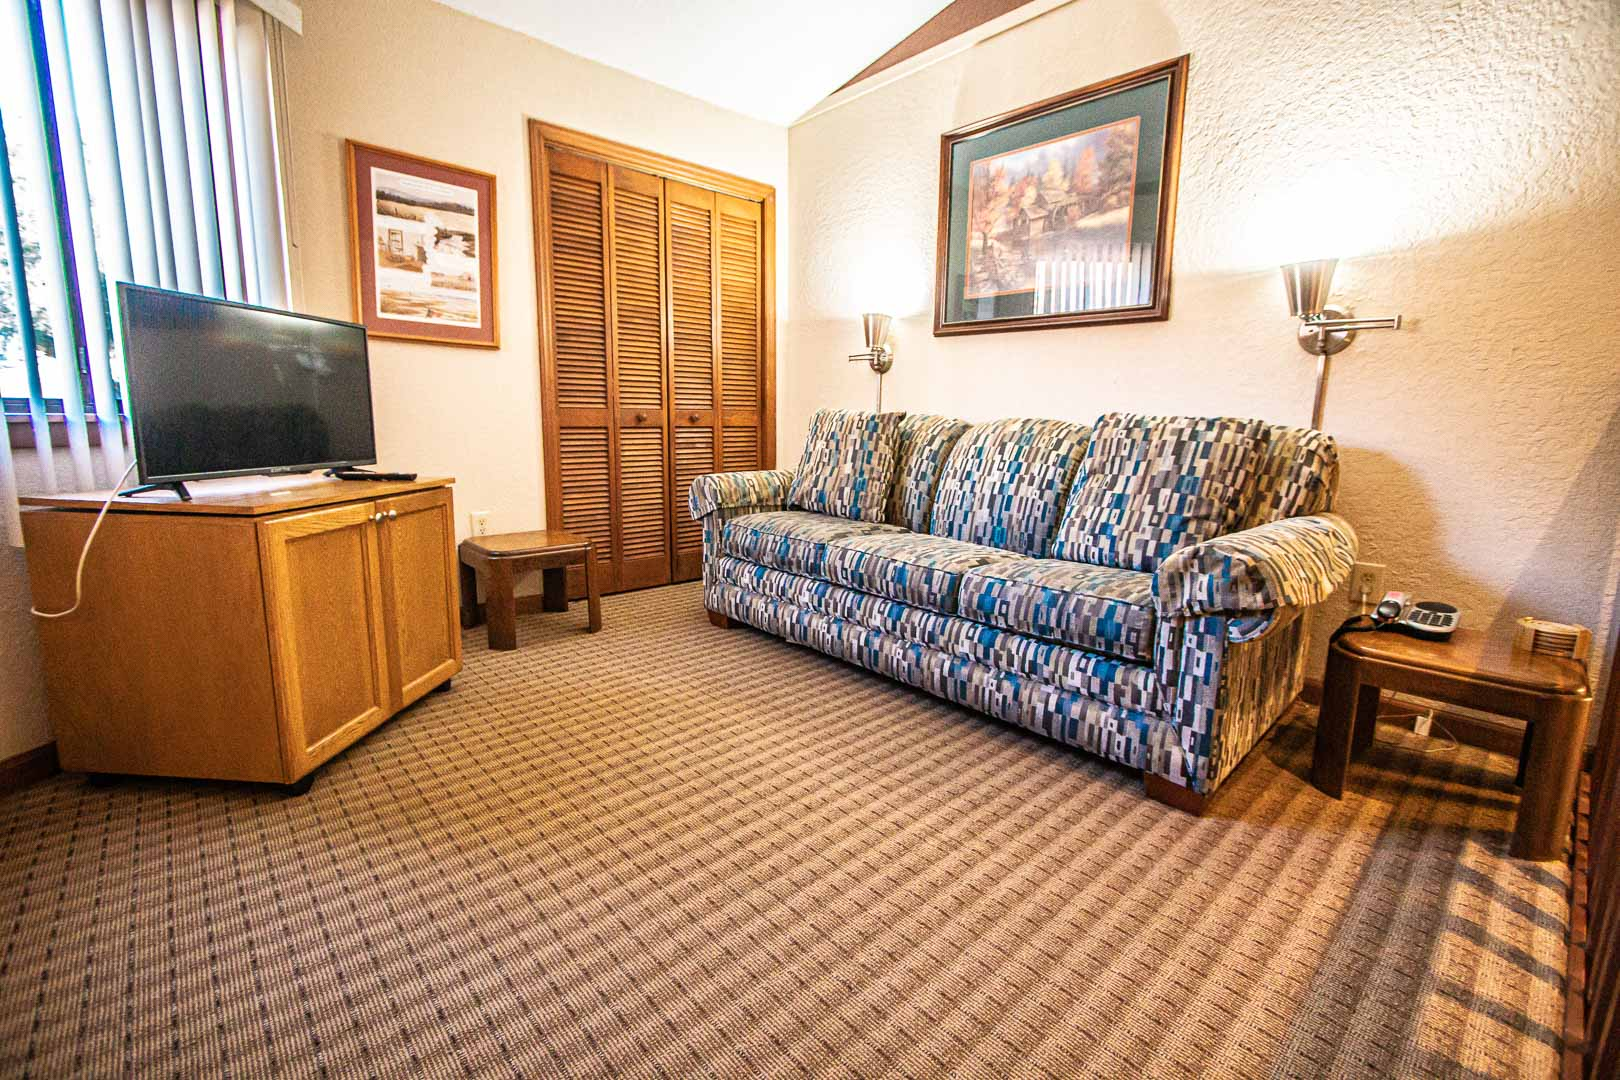 An expansive living room area at VRI's Fairways of the Mountains in North Carolina